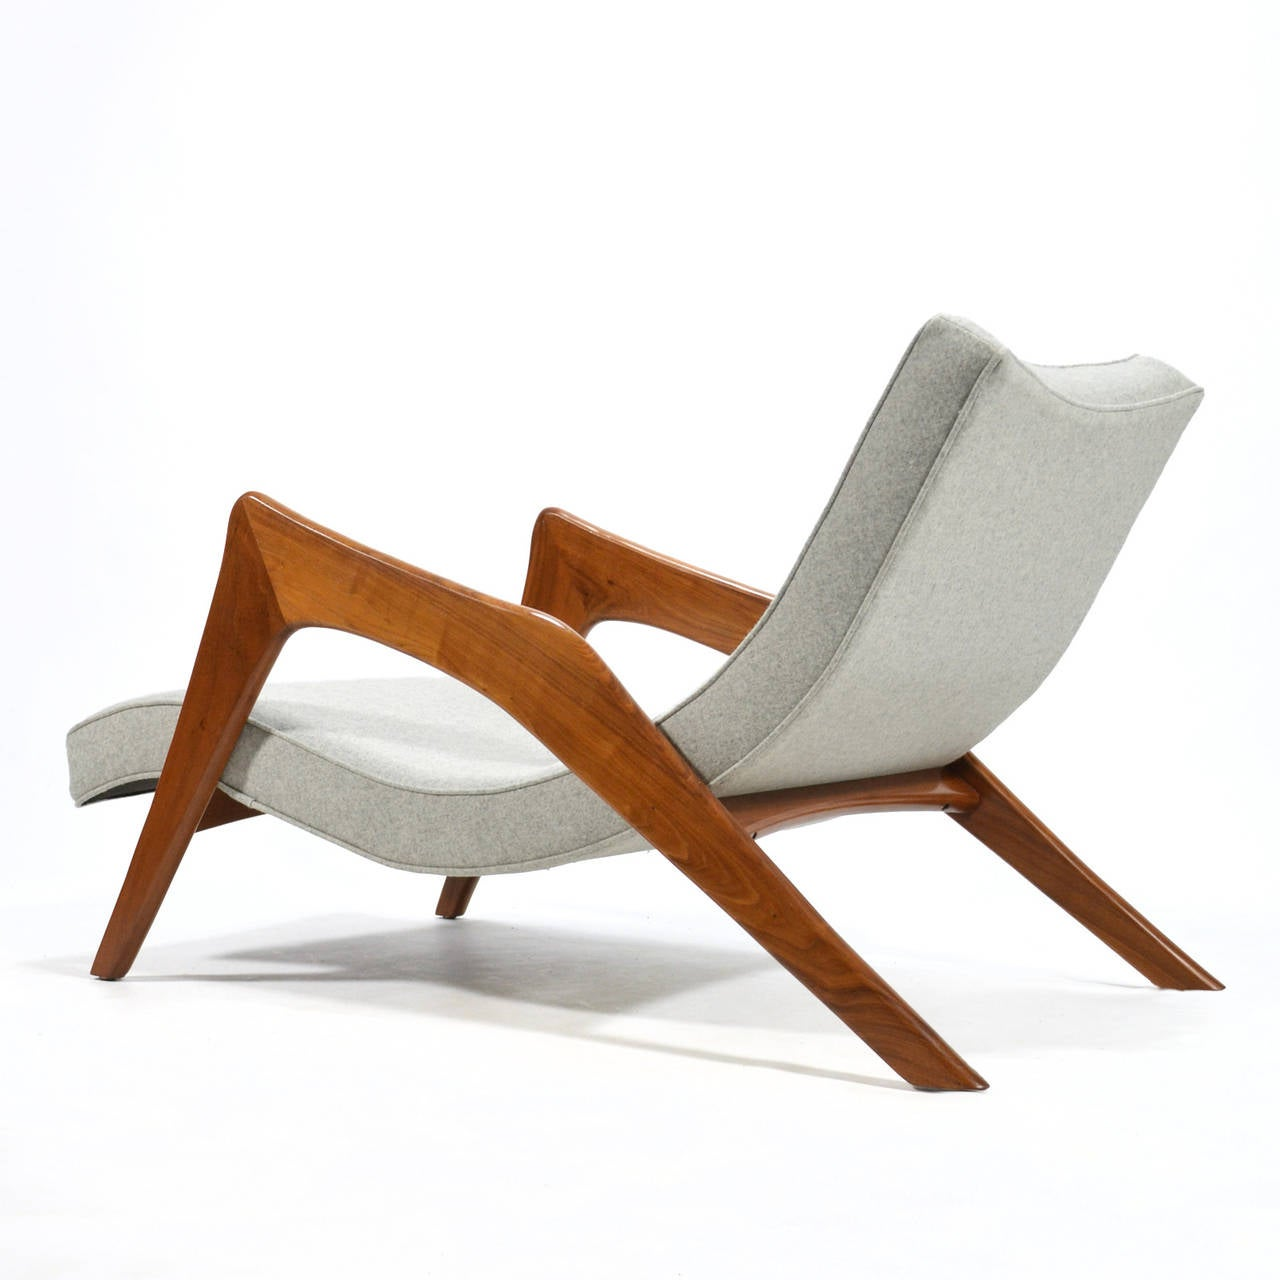 Adrian Pearsall Pair of Crescent Lounge Chairs and Ottomans For Sale 2